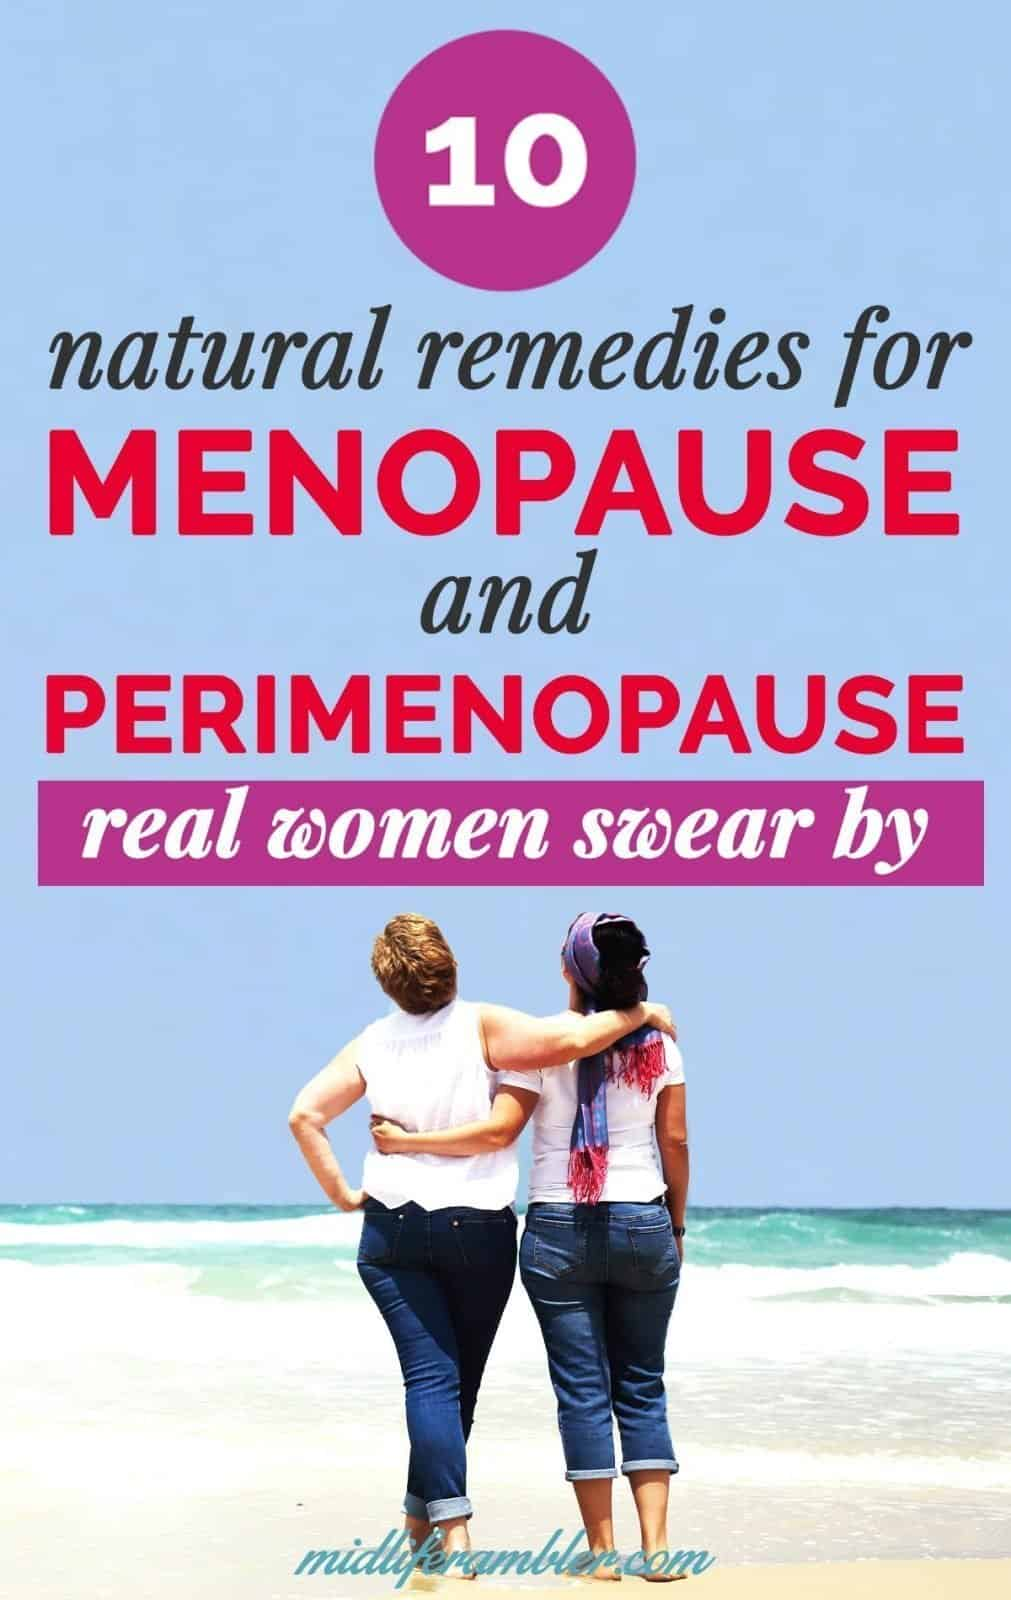 10 Natural Remedies for Menopause Symptoms that Really Work According to Real Women 8